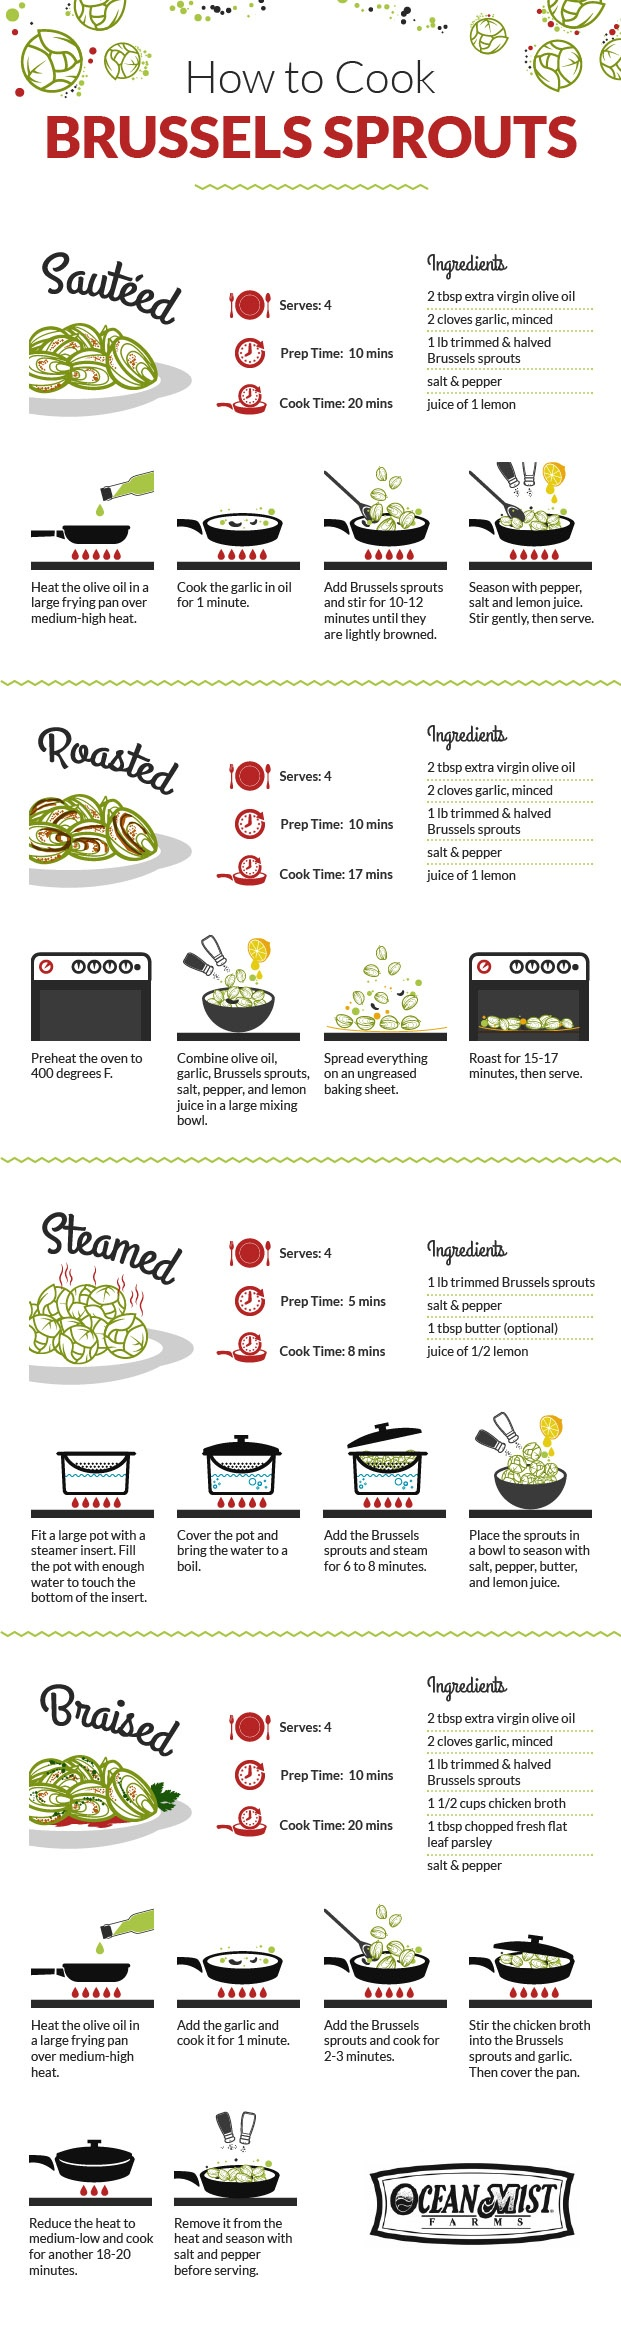 How to Cook Brussels Sprouts Infographic